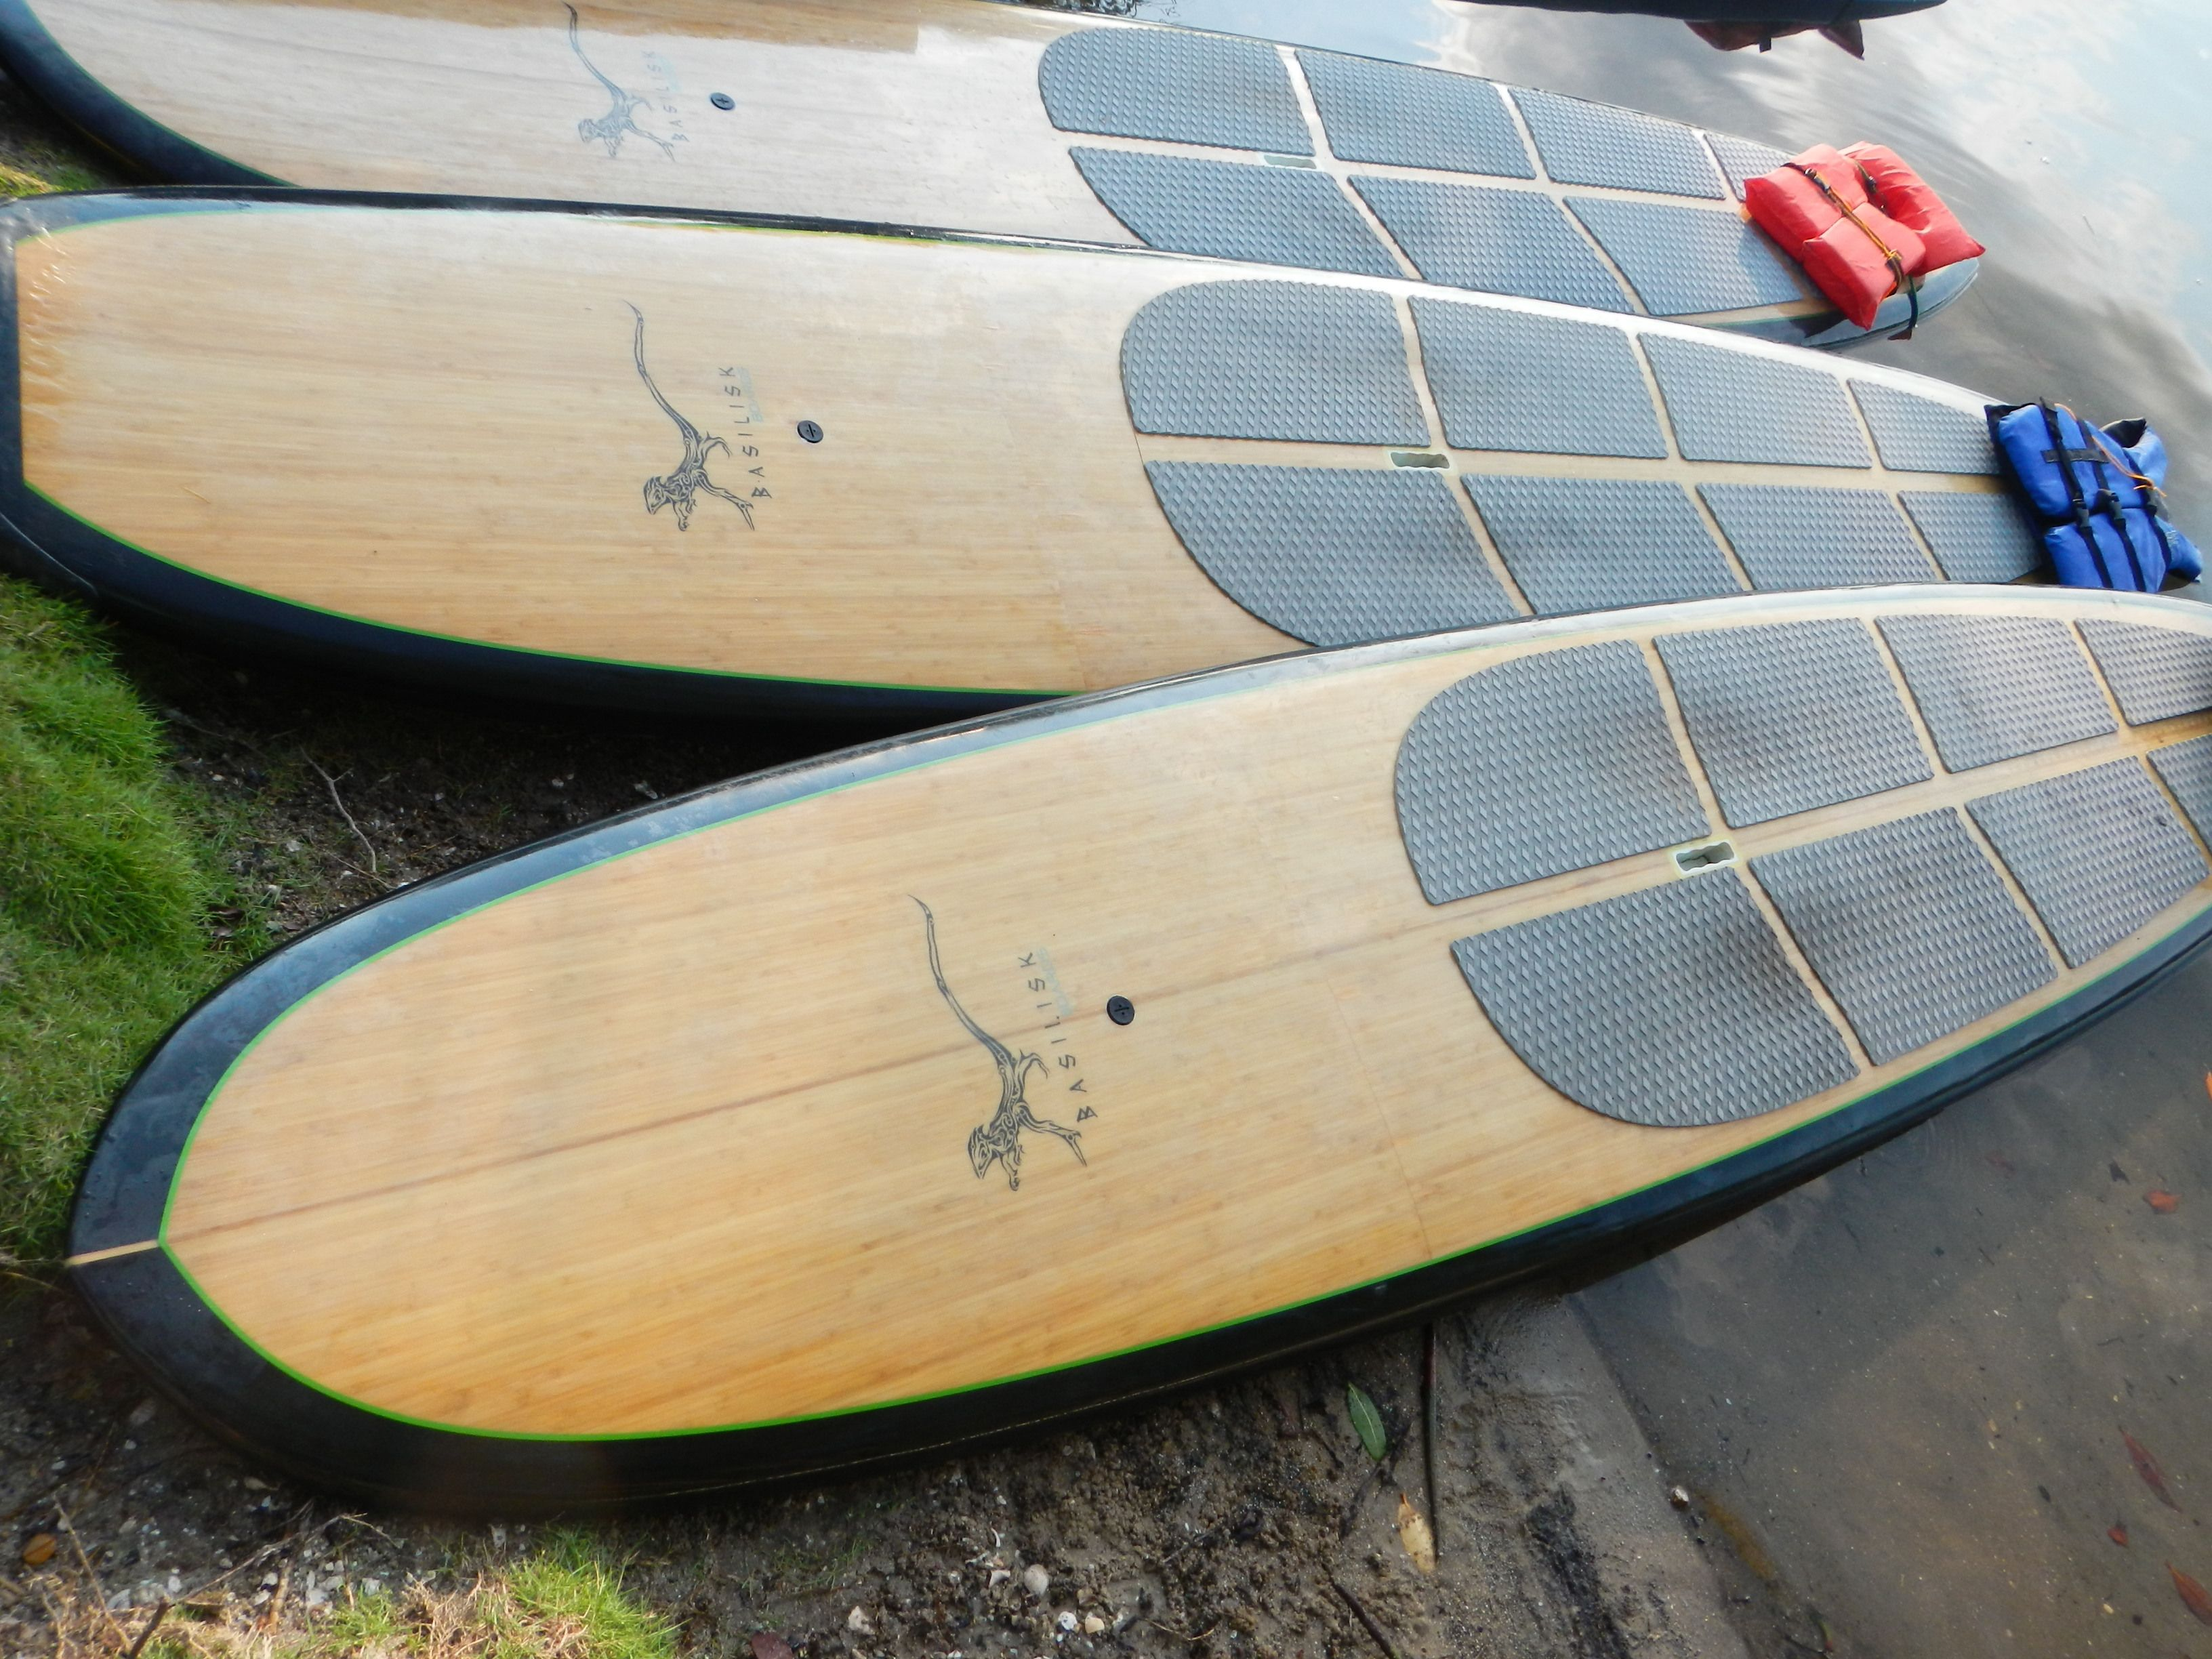 Deppen custom wood canoe paddles - Basilisk Boards Bamboo Stand Up Paddle Boards Getting Ready For A Day On The Water